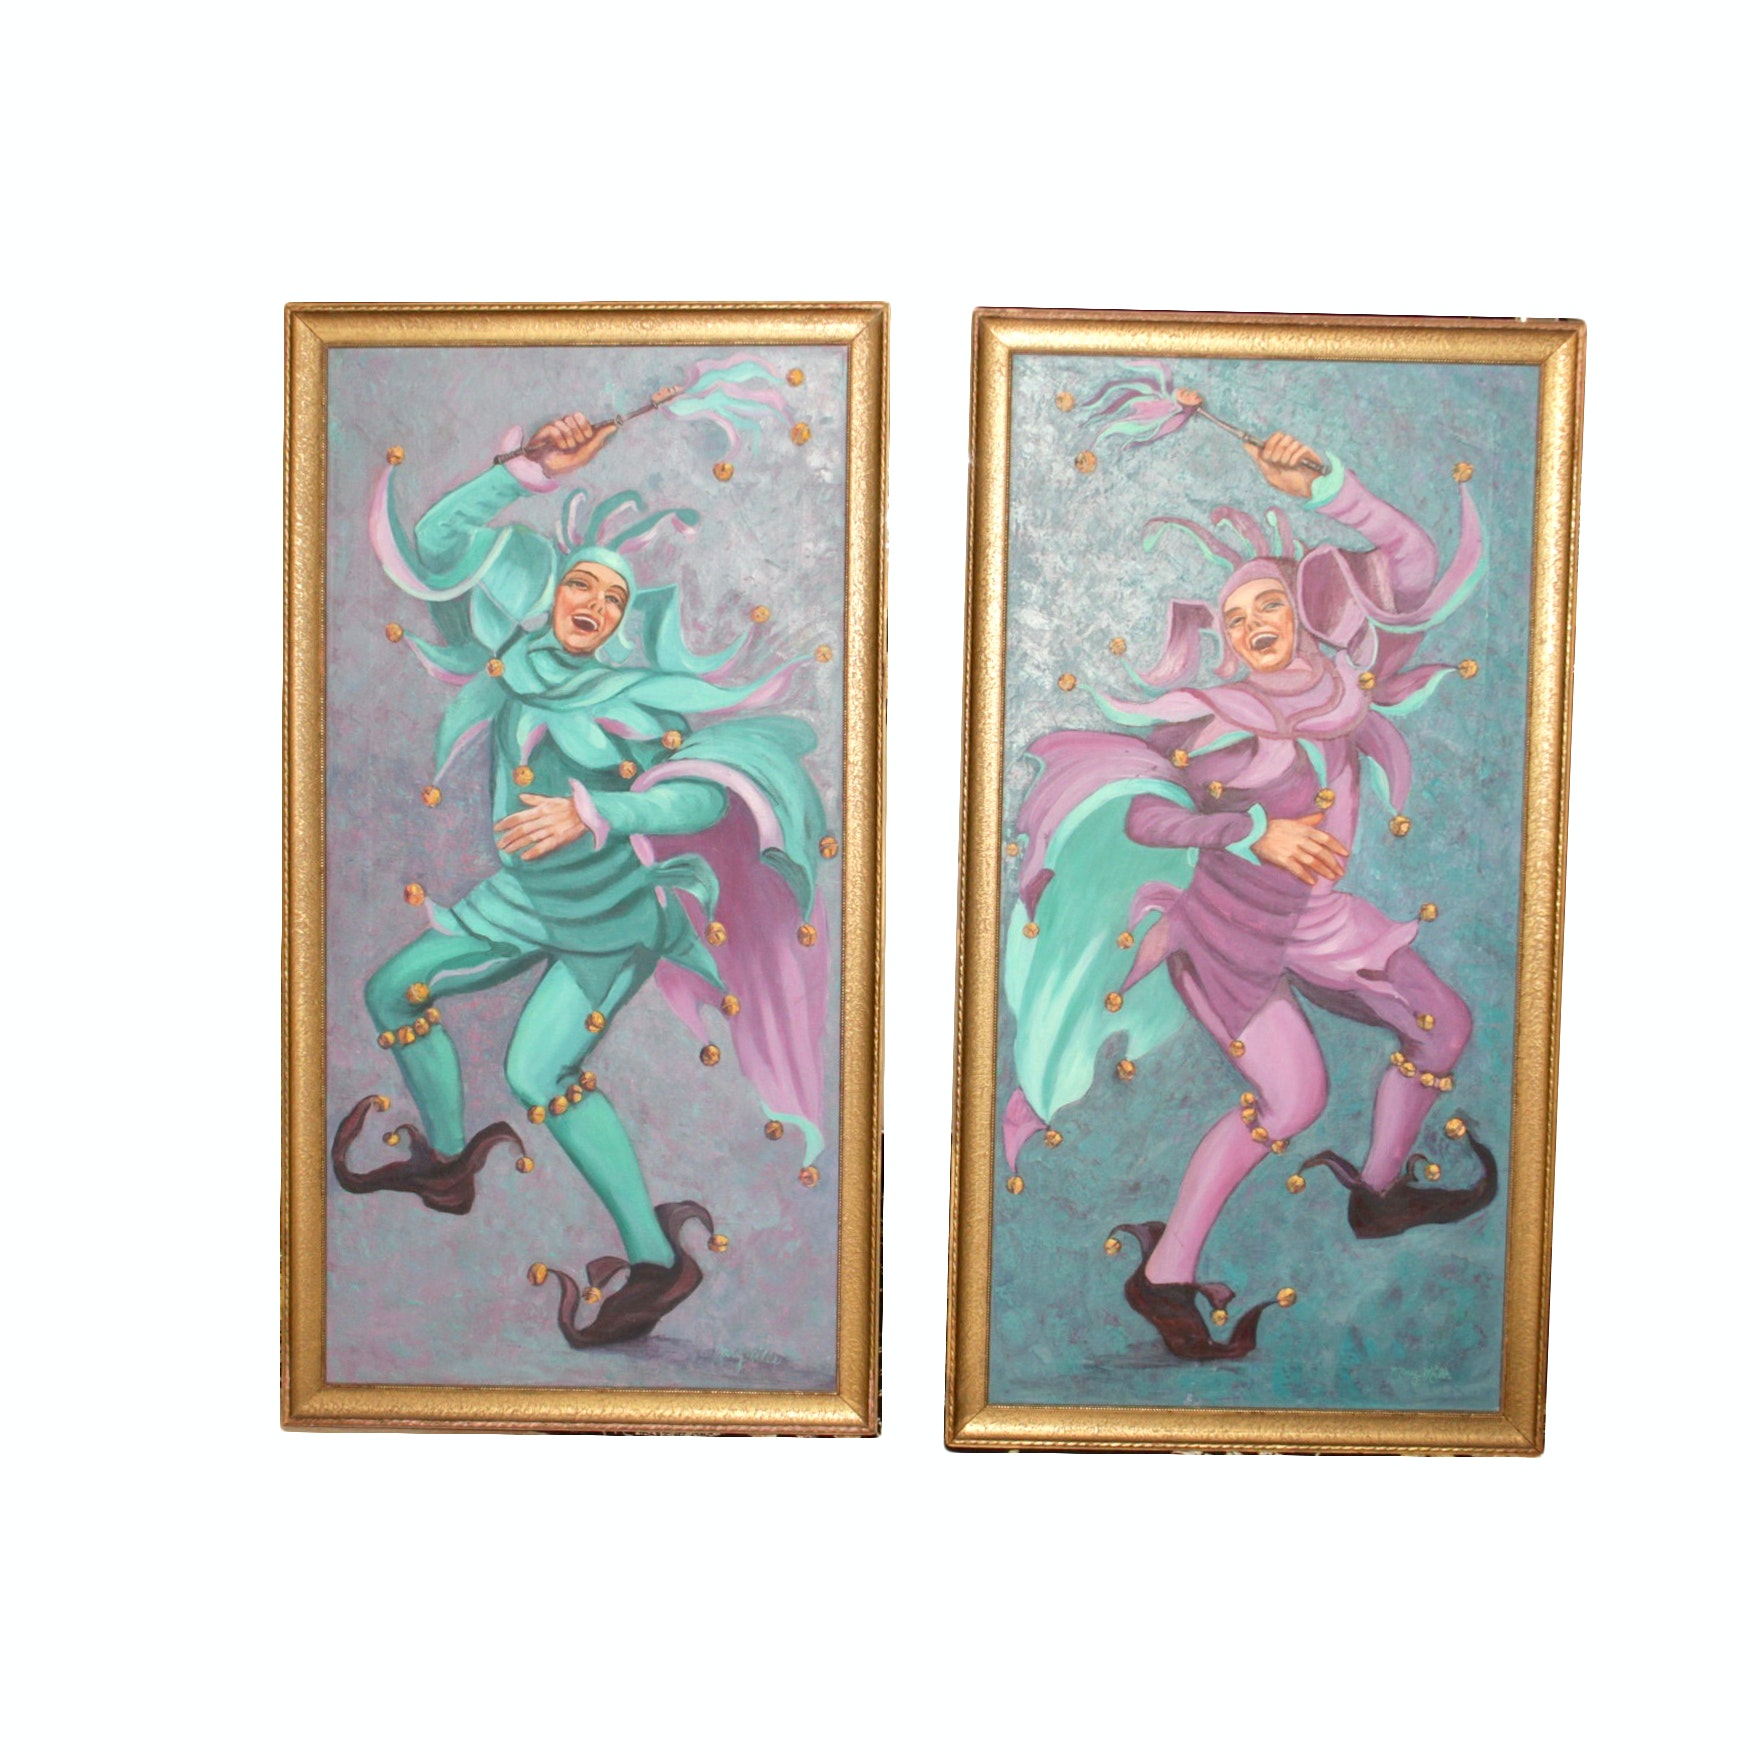 Framed Acrylic on Canvas Paintings of Jesters by Mary Mills